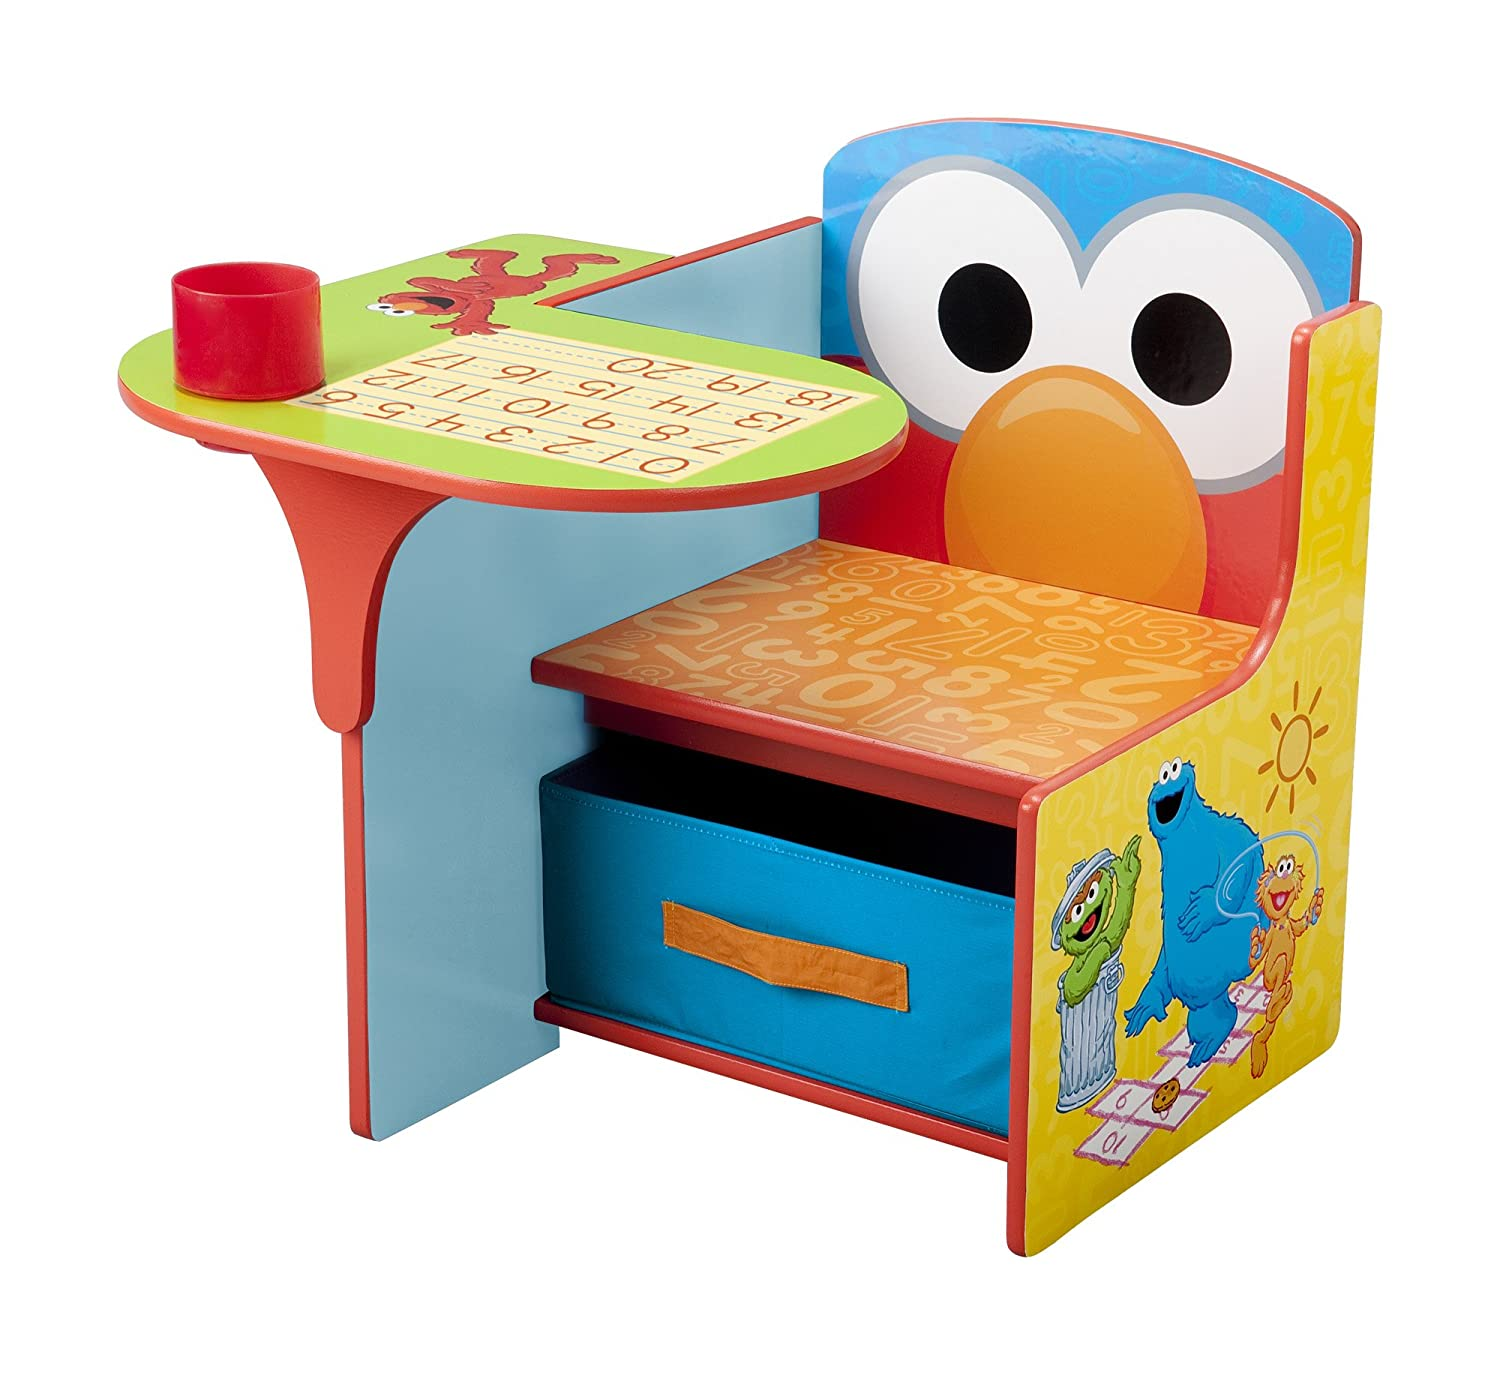 Amazon.com: Delta Children Chair Desk With Storage Bin, Sesame Street: Baby